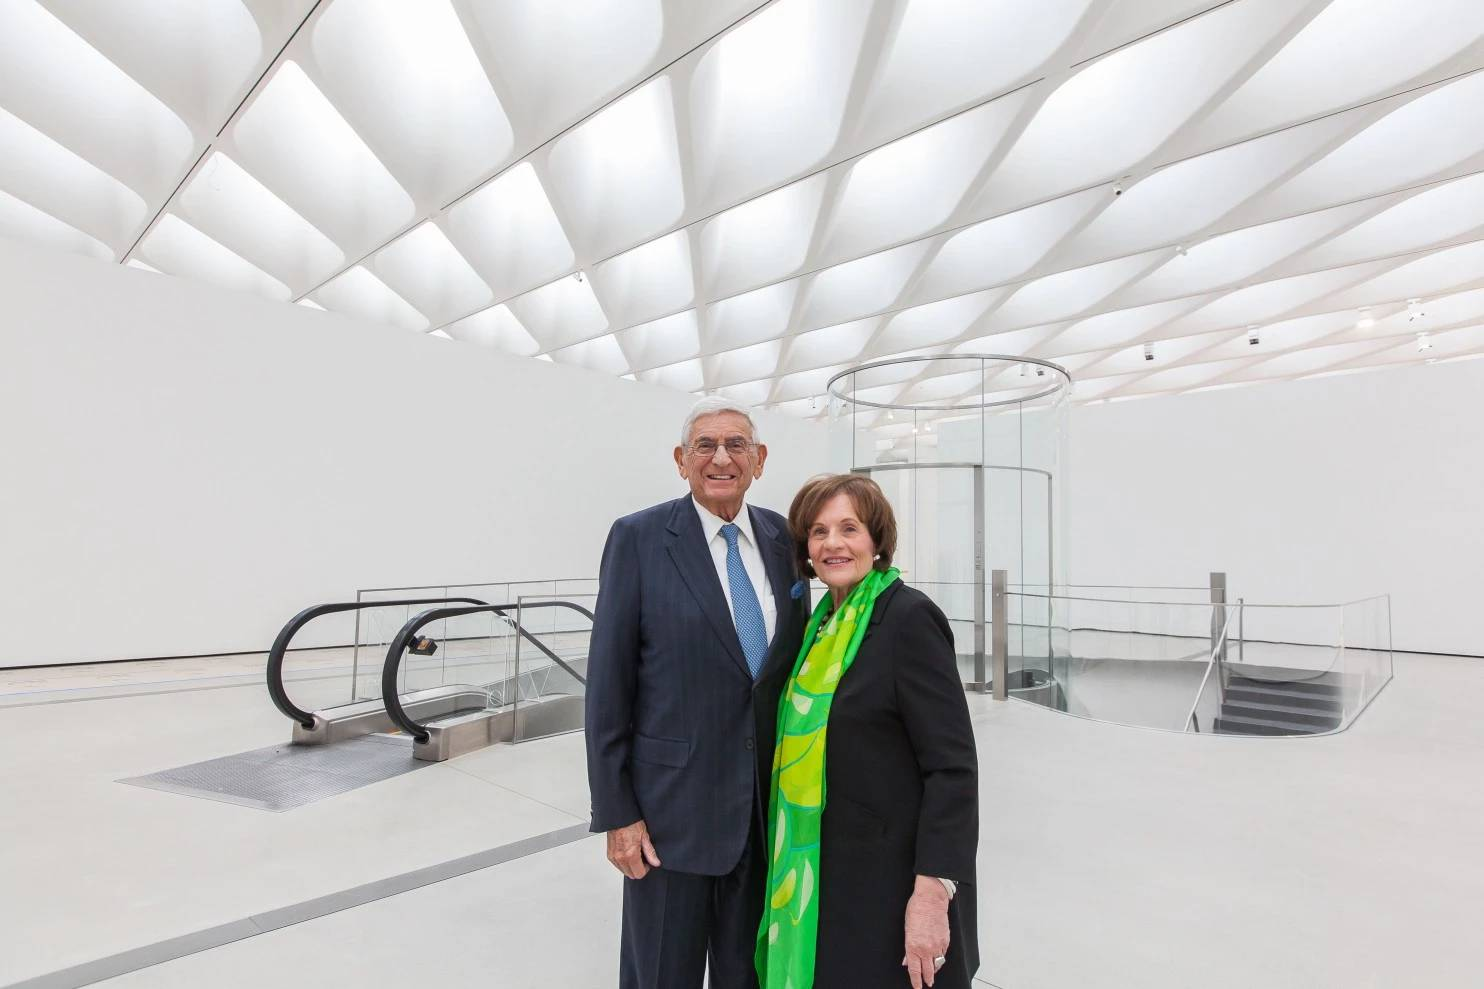 The problem with The Broad is the collection itself